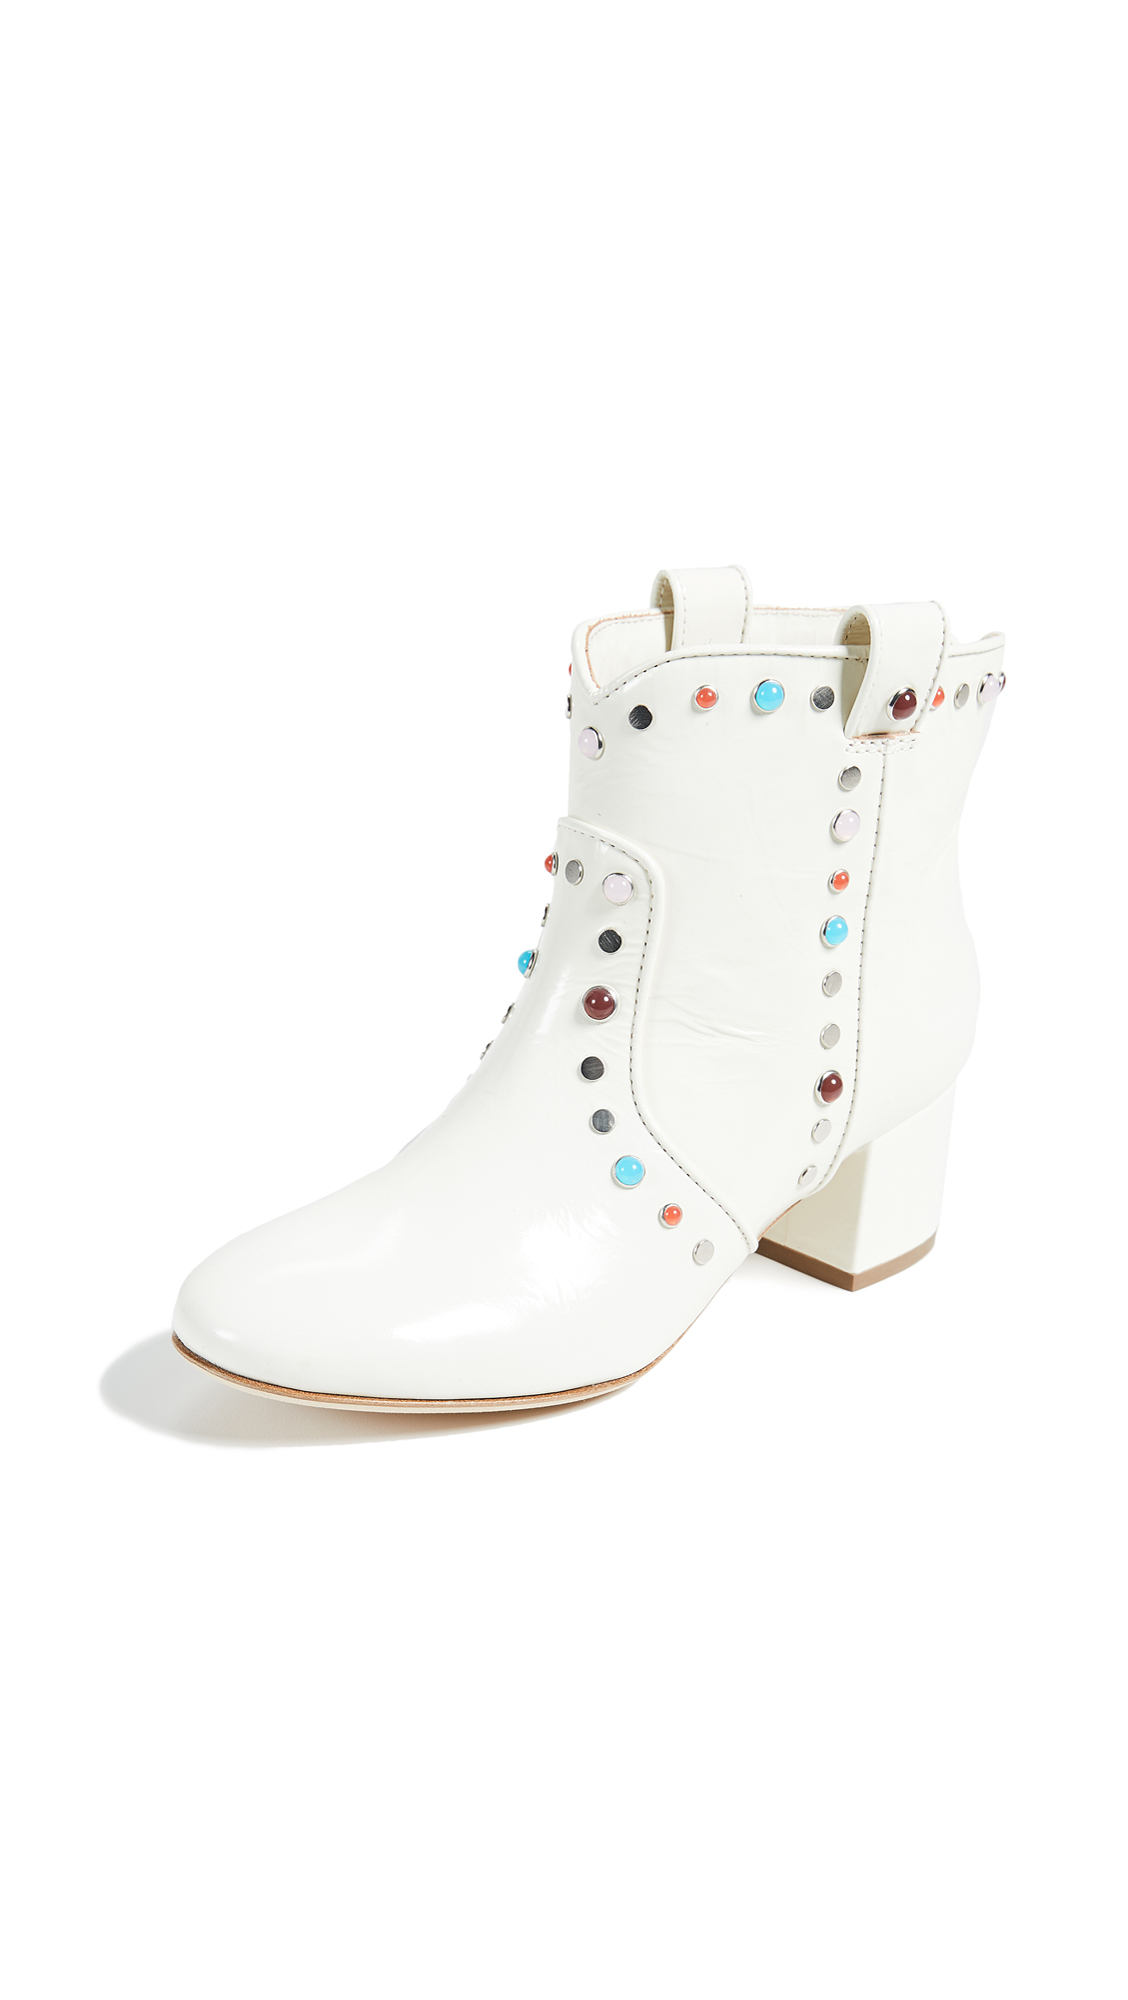 Laurence Dacade Belen Studded Booties - White